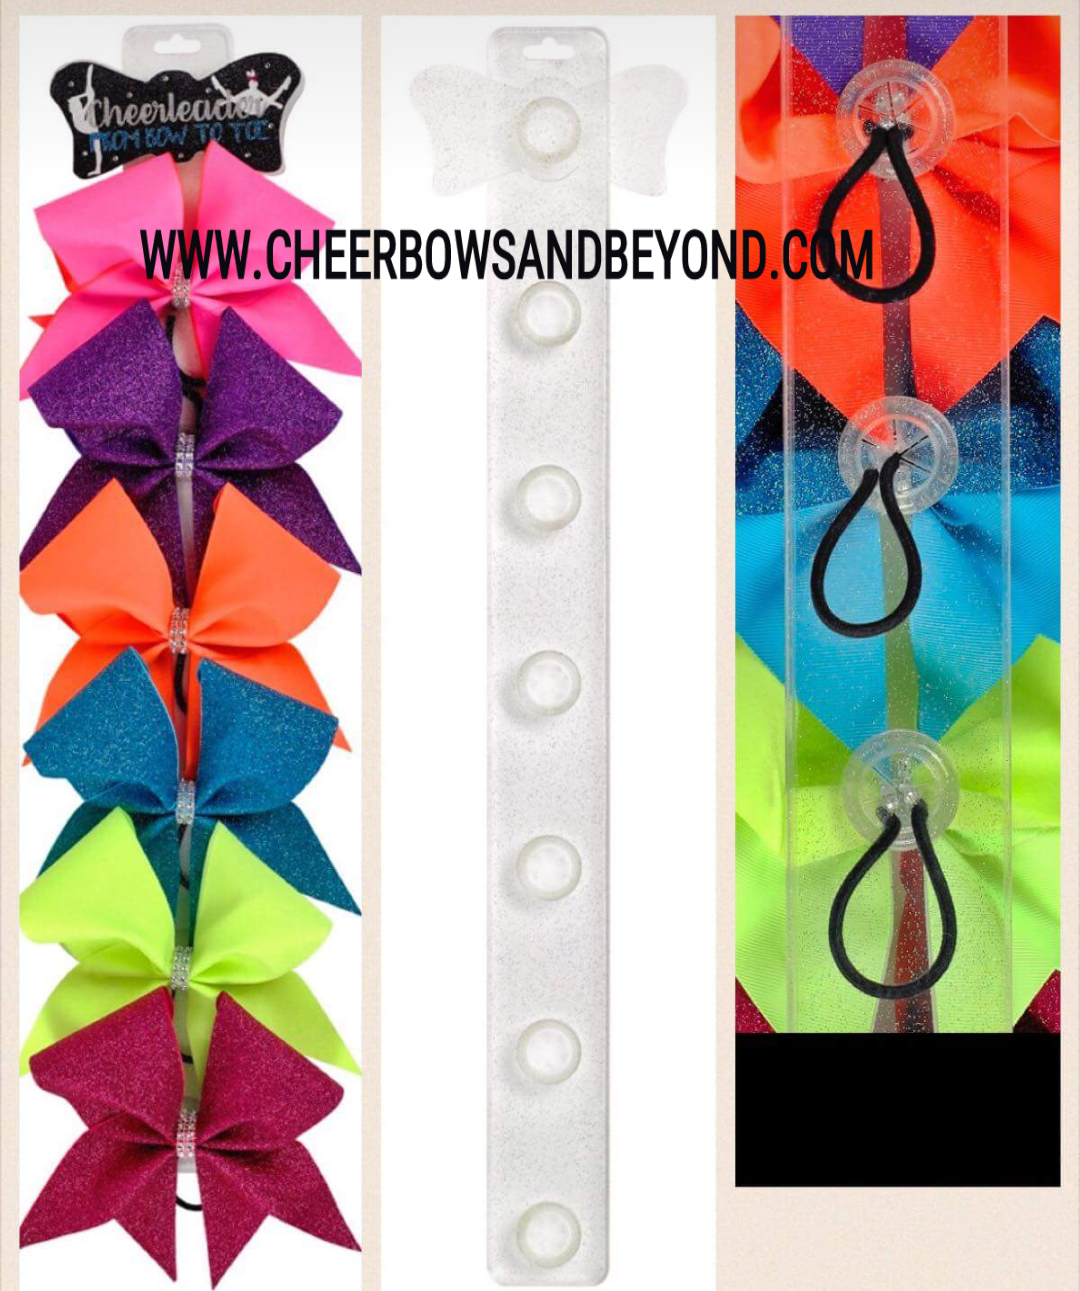 This display is not used jus for Cheer Bows. It acts as a beautiful ...